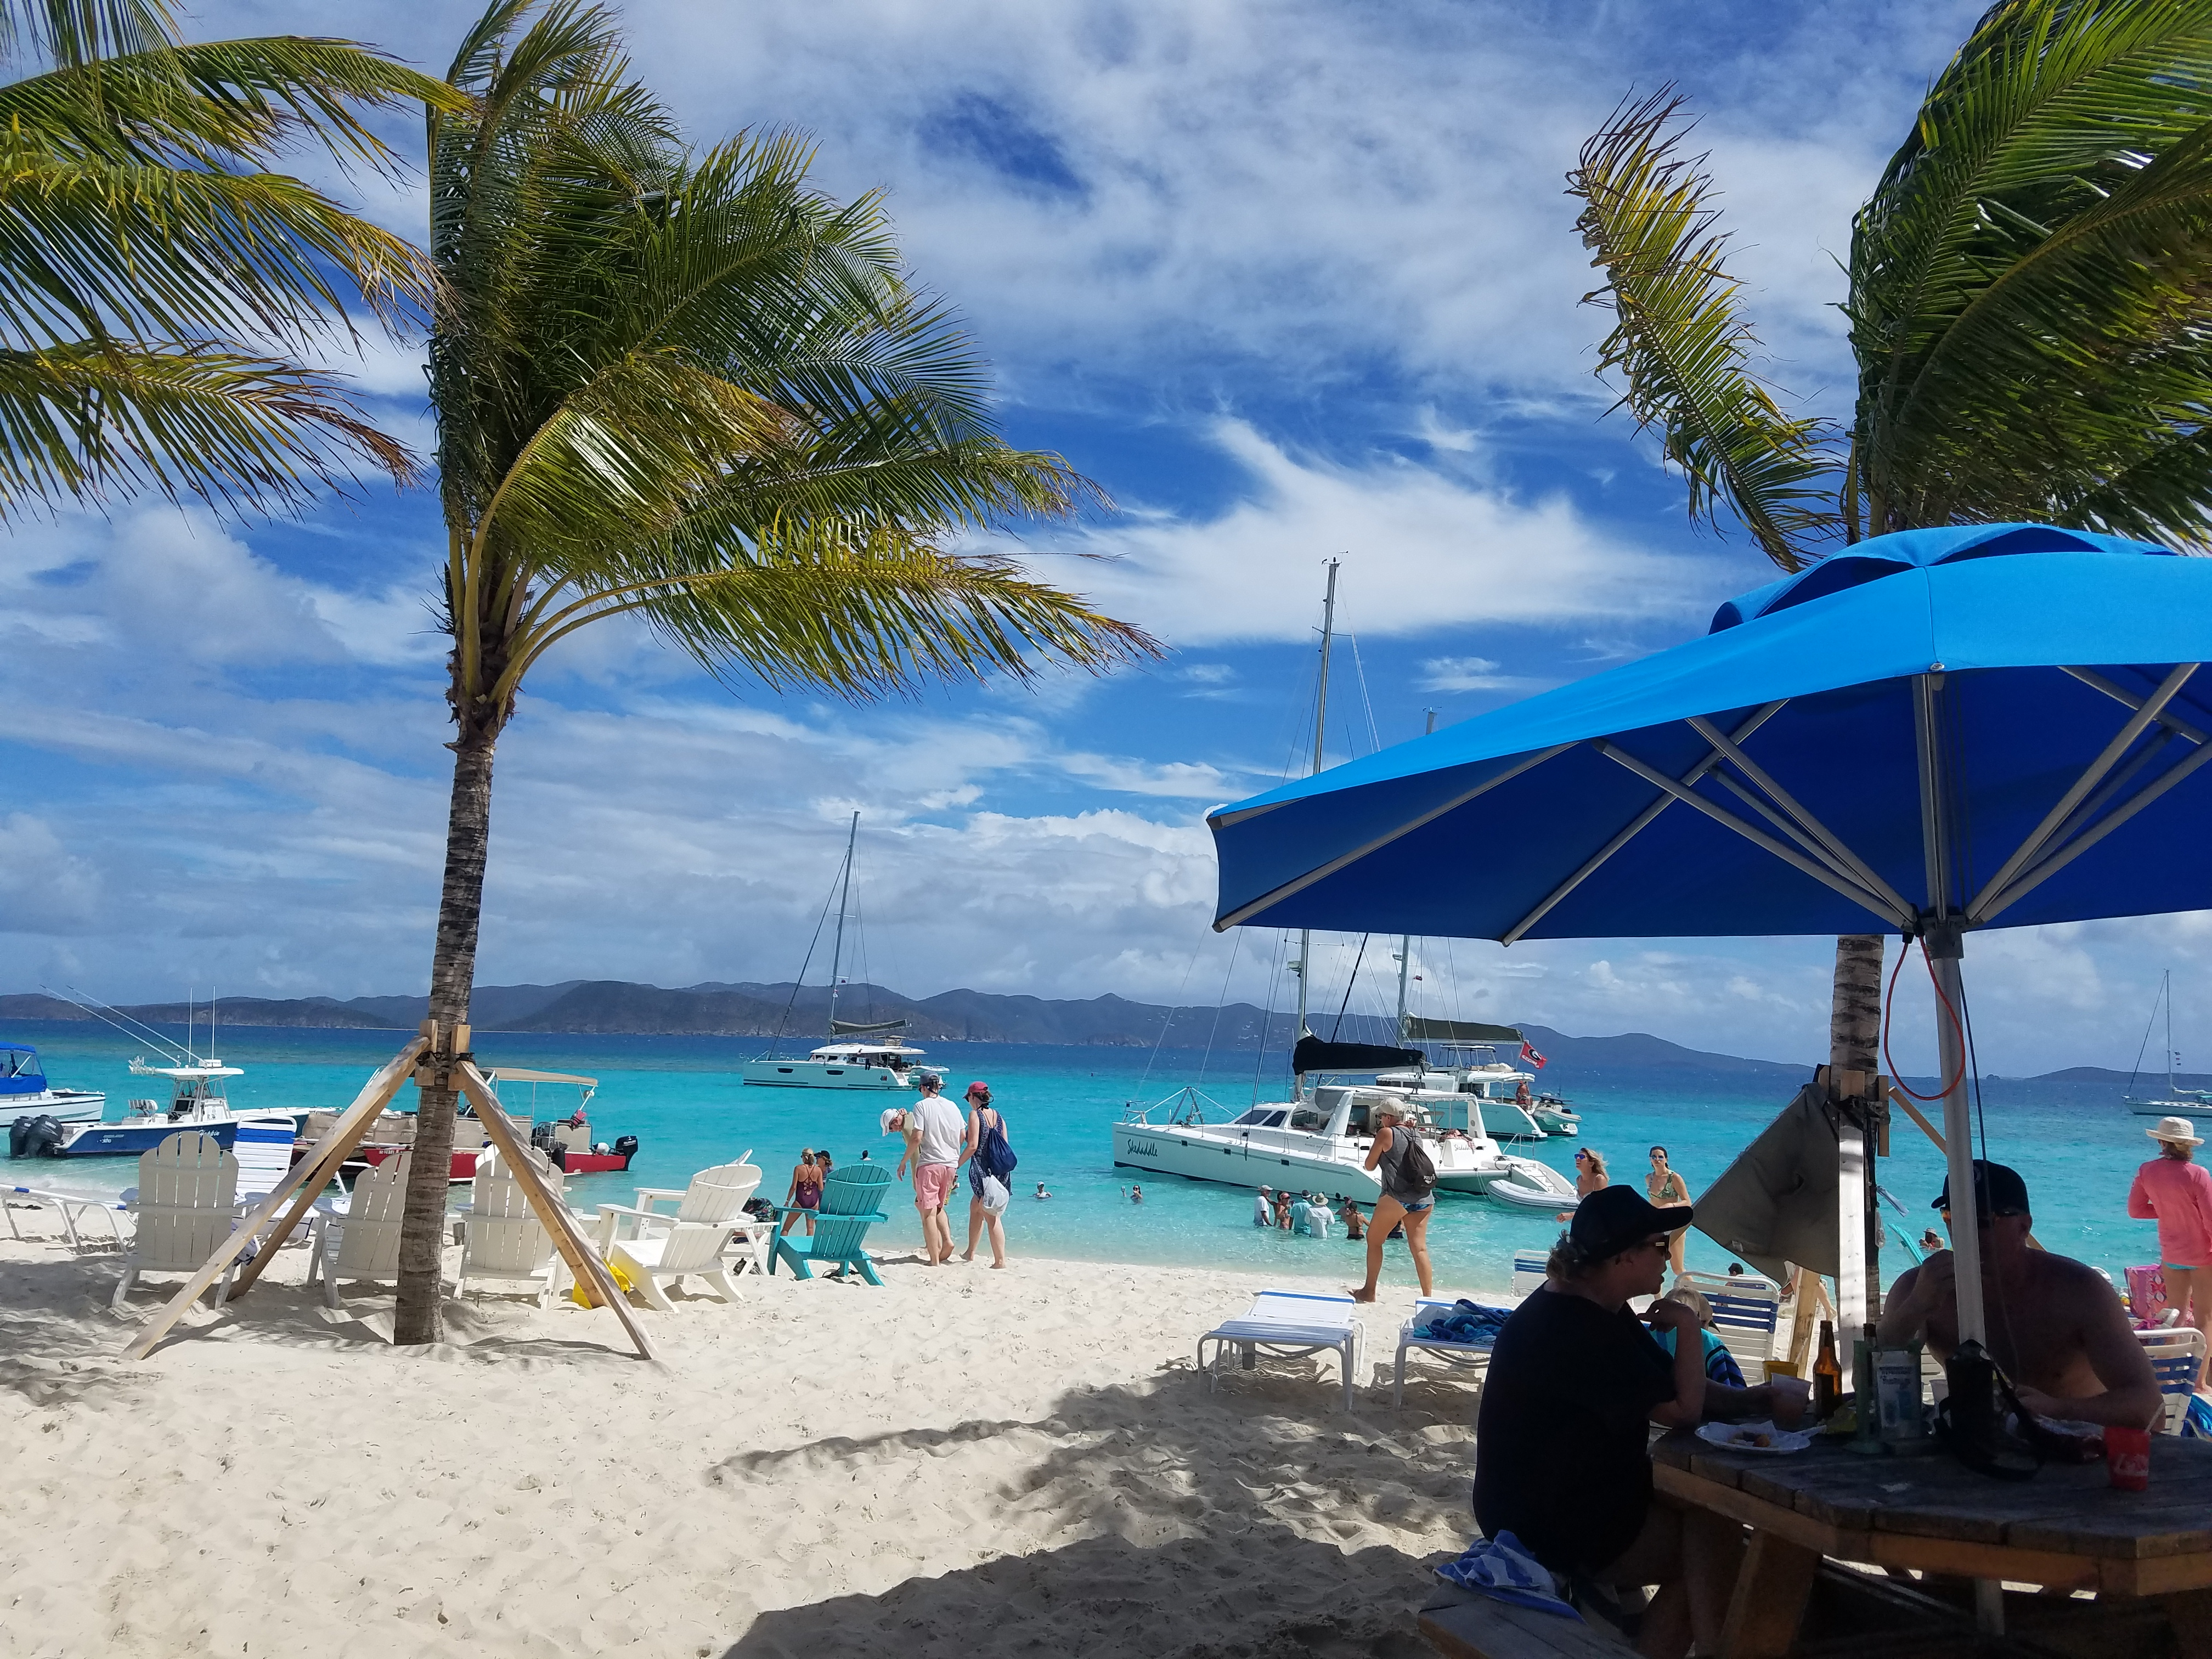 Jost van dyke, BVI, st thomas boat rental, st john boat rental, things to do in the virgin islands, beach bar, virgin islands